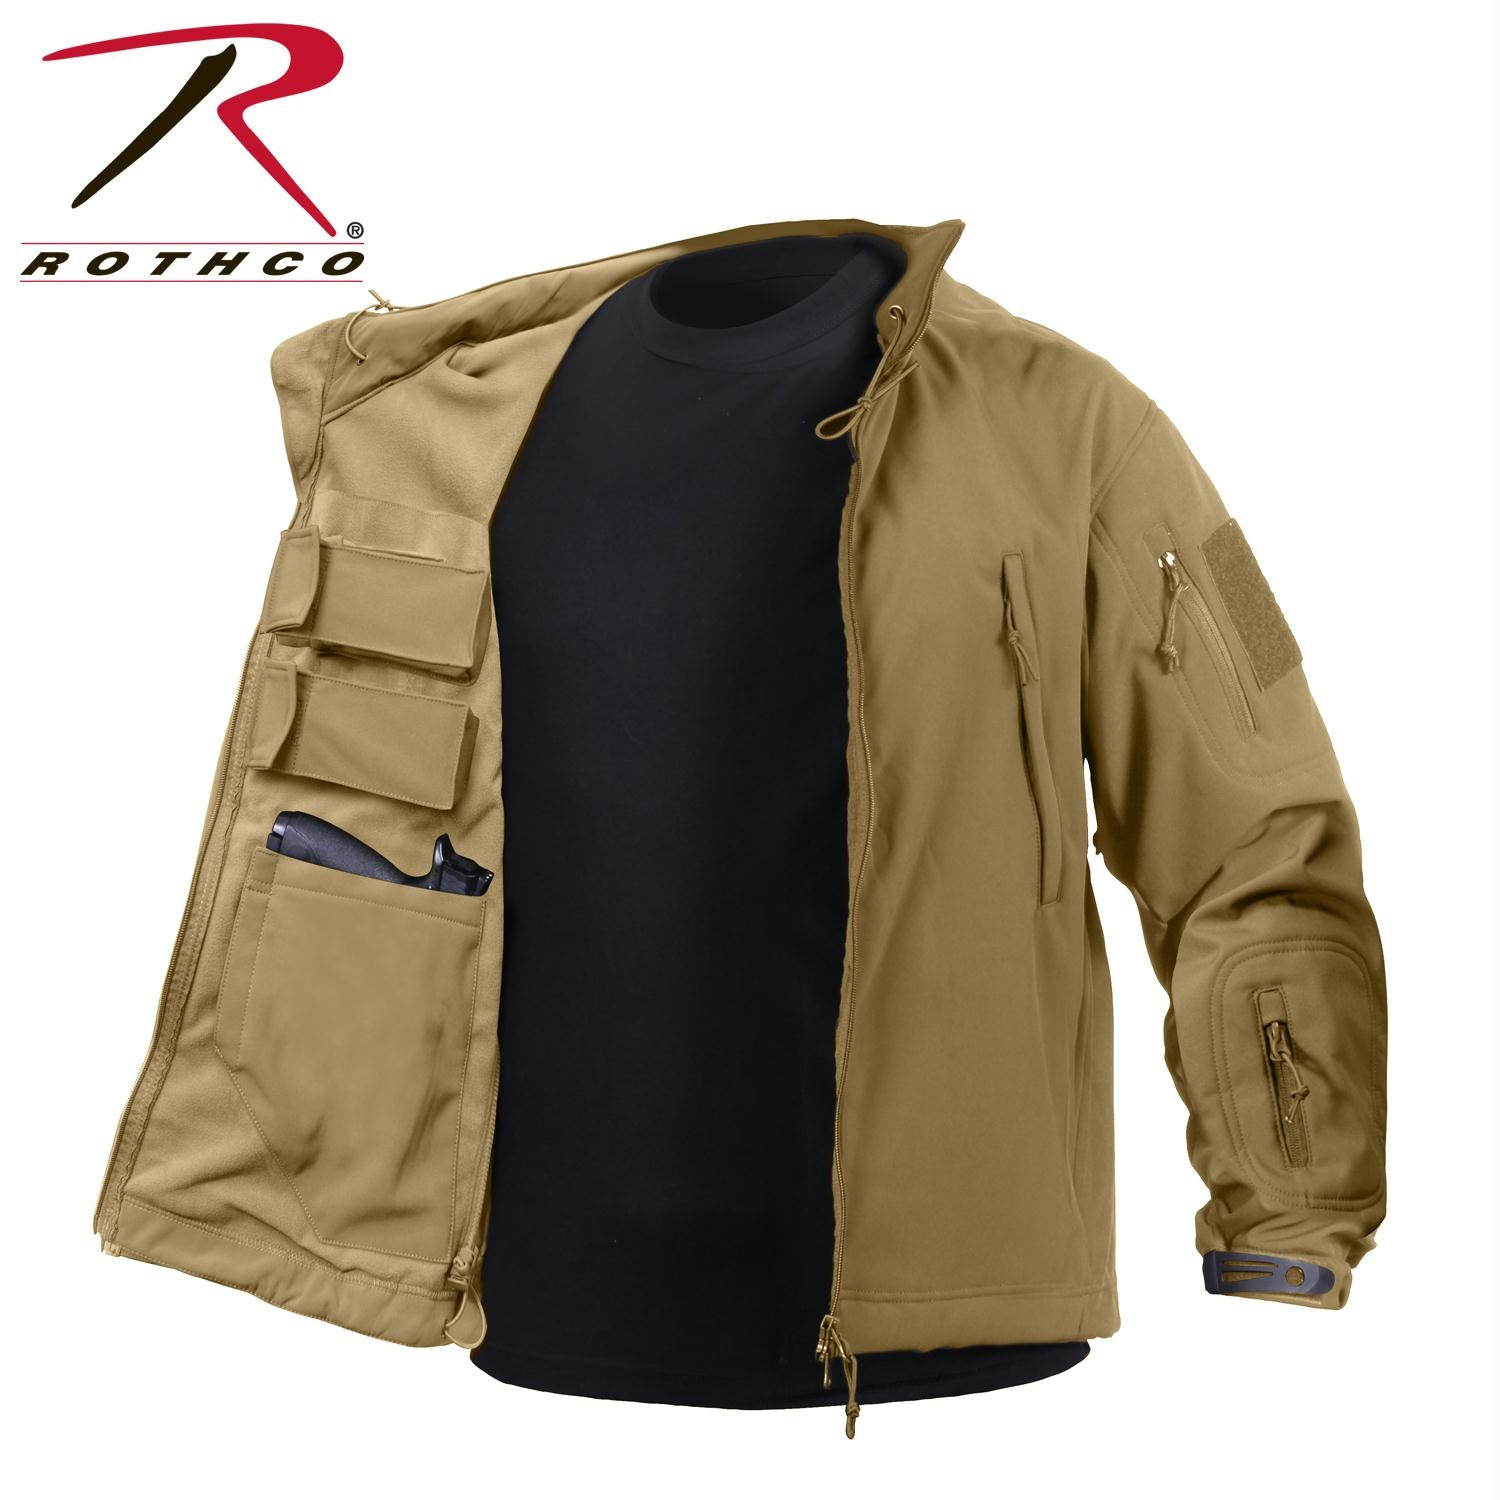 Rothco Concealed Carry Soft Shell Jacket - Coyote Brown / 3XL